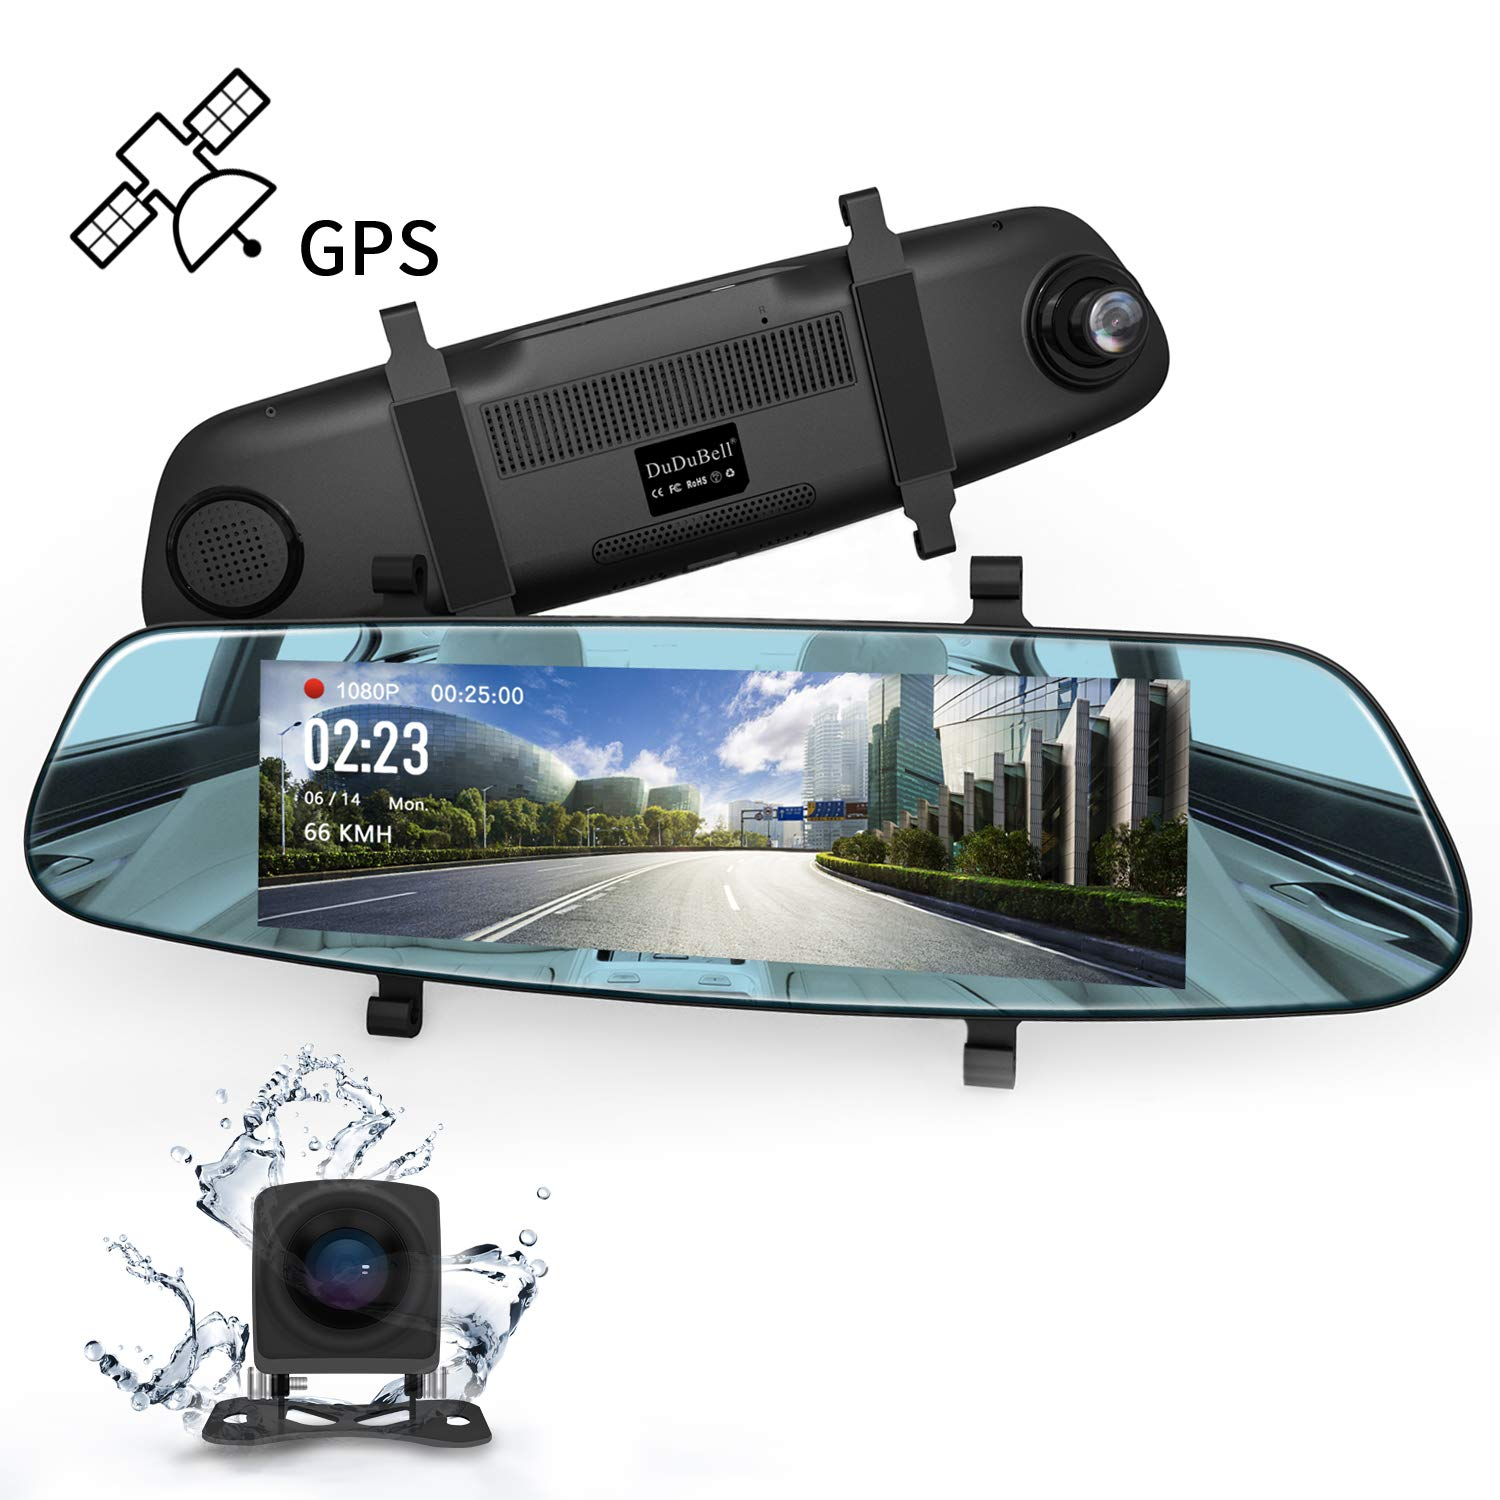 Mirror Dash Cam, DuDuBell 7'' Backup Camera with External GPS, 1080P Front and 720P Rear Camera with Starlight Night Vision IPS Touch Screen 290° Wide Angle, Reverse Assistance Parking Monitor HDR+